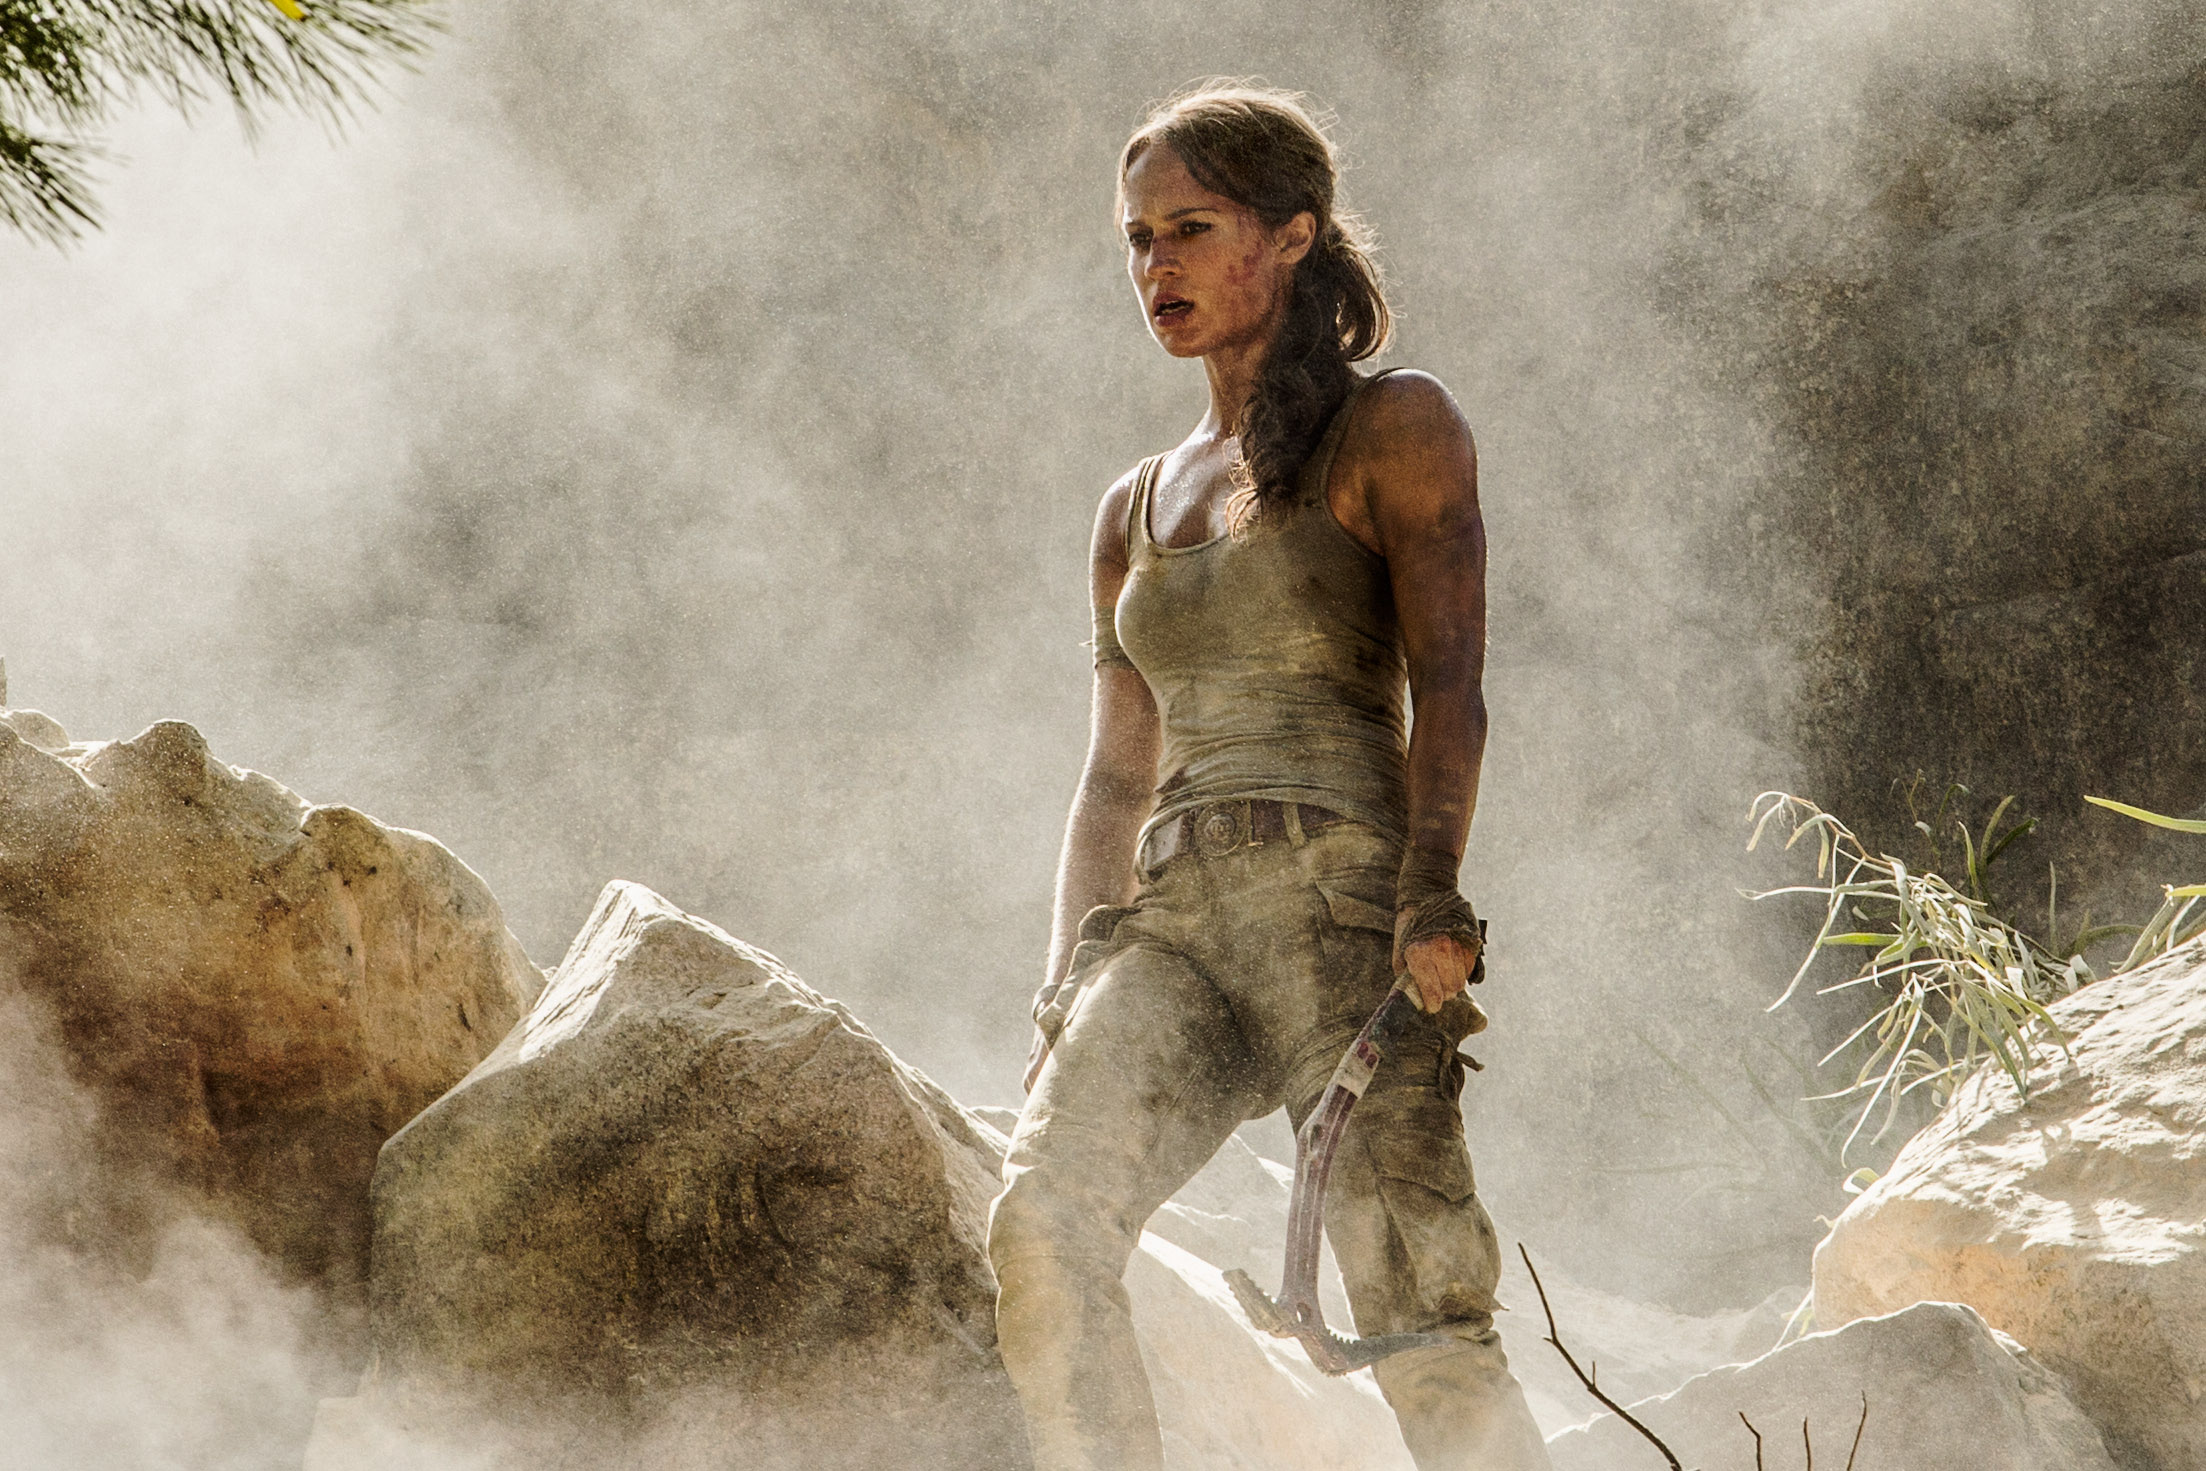 f4eff3ee6e1193 First Official Photos of Alicia Vikander as Lara Croft in TOMB ...